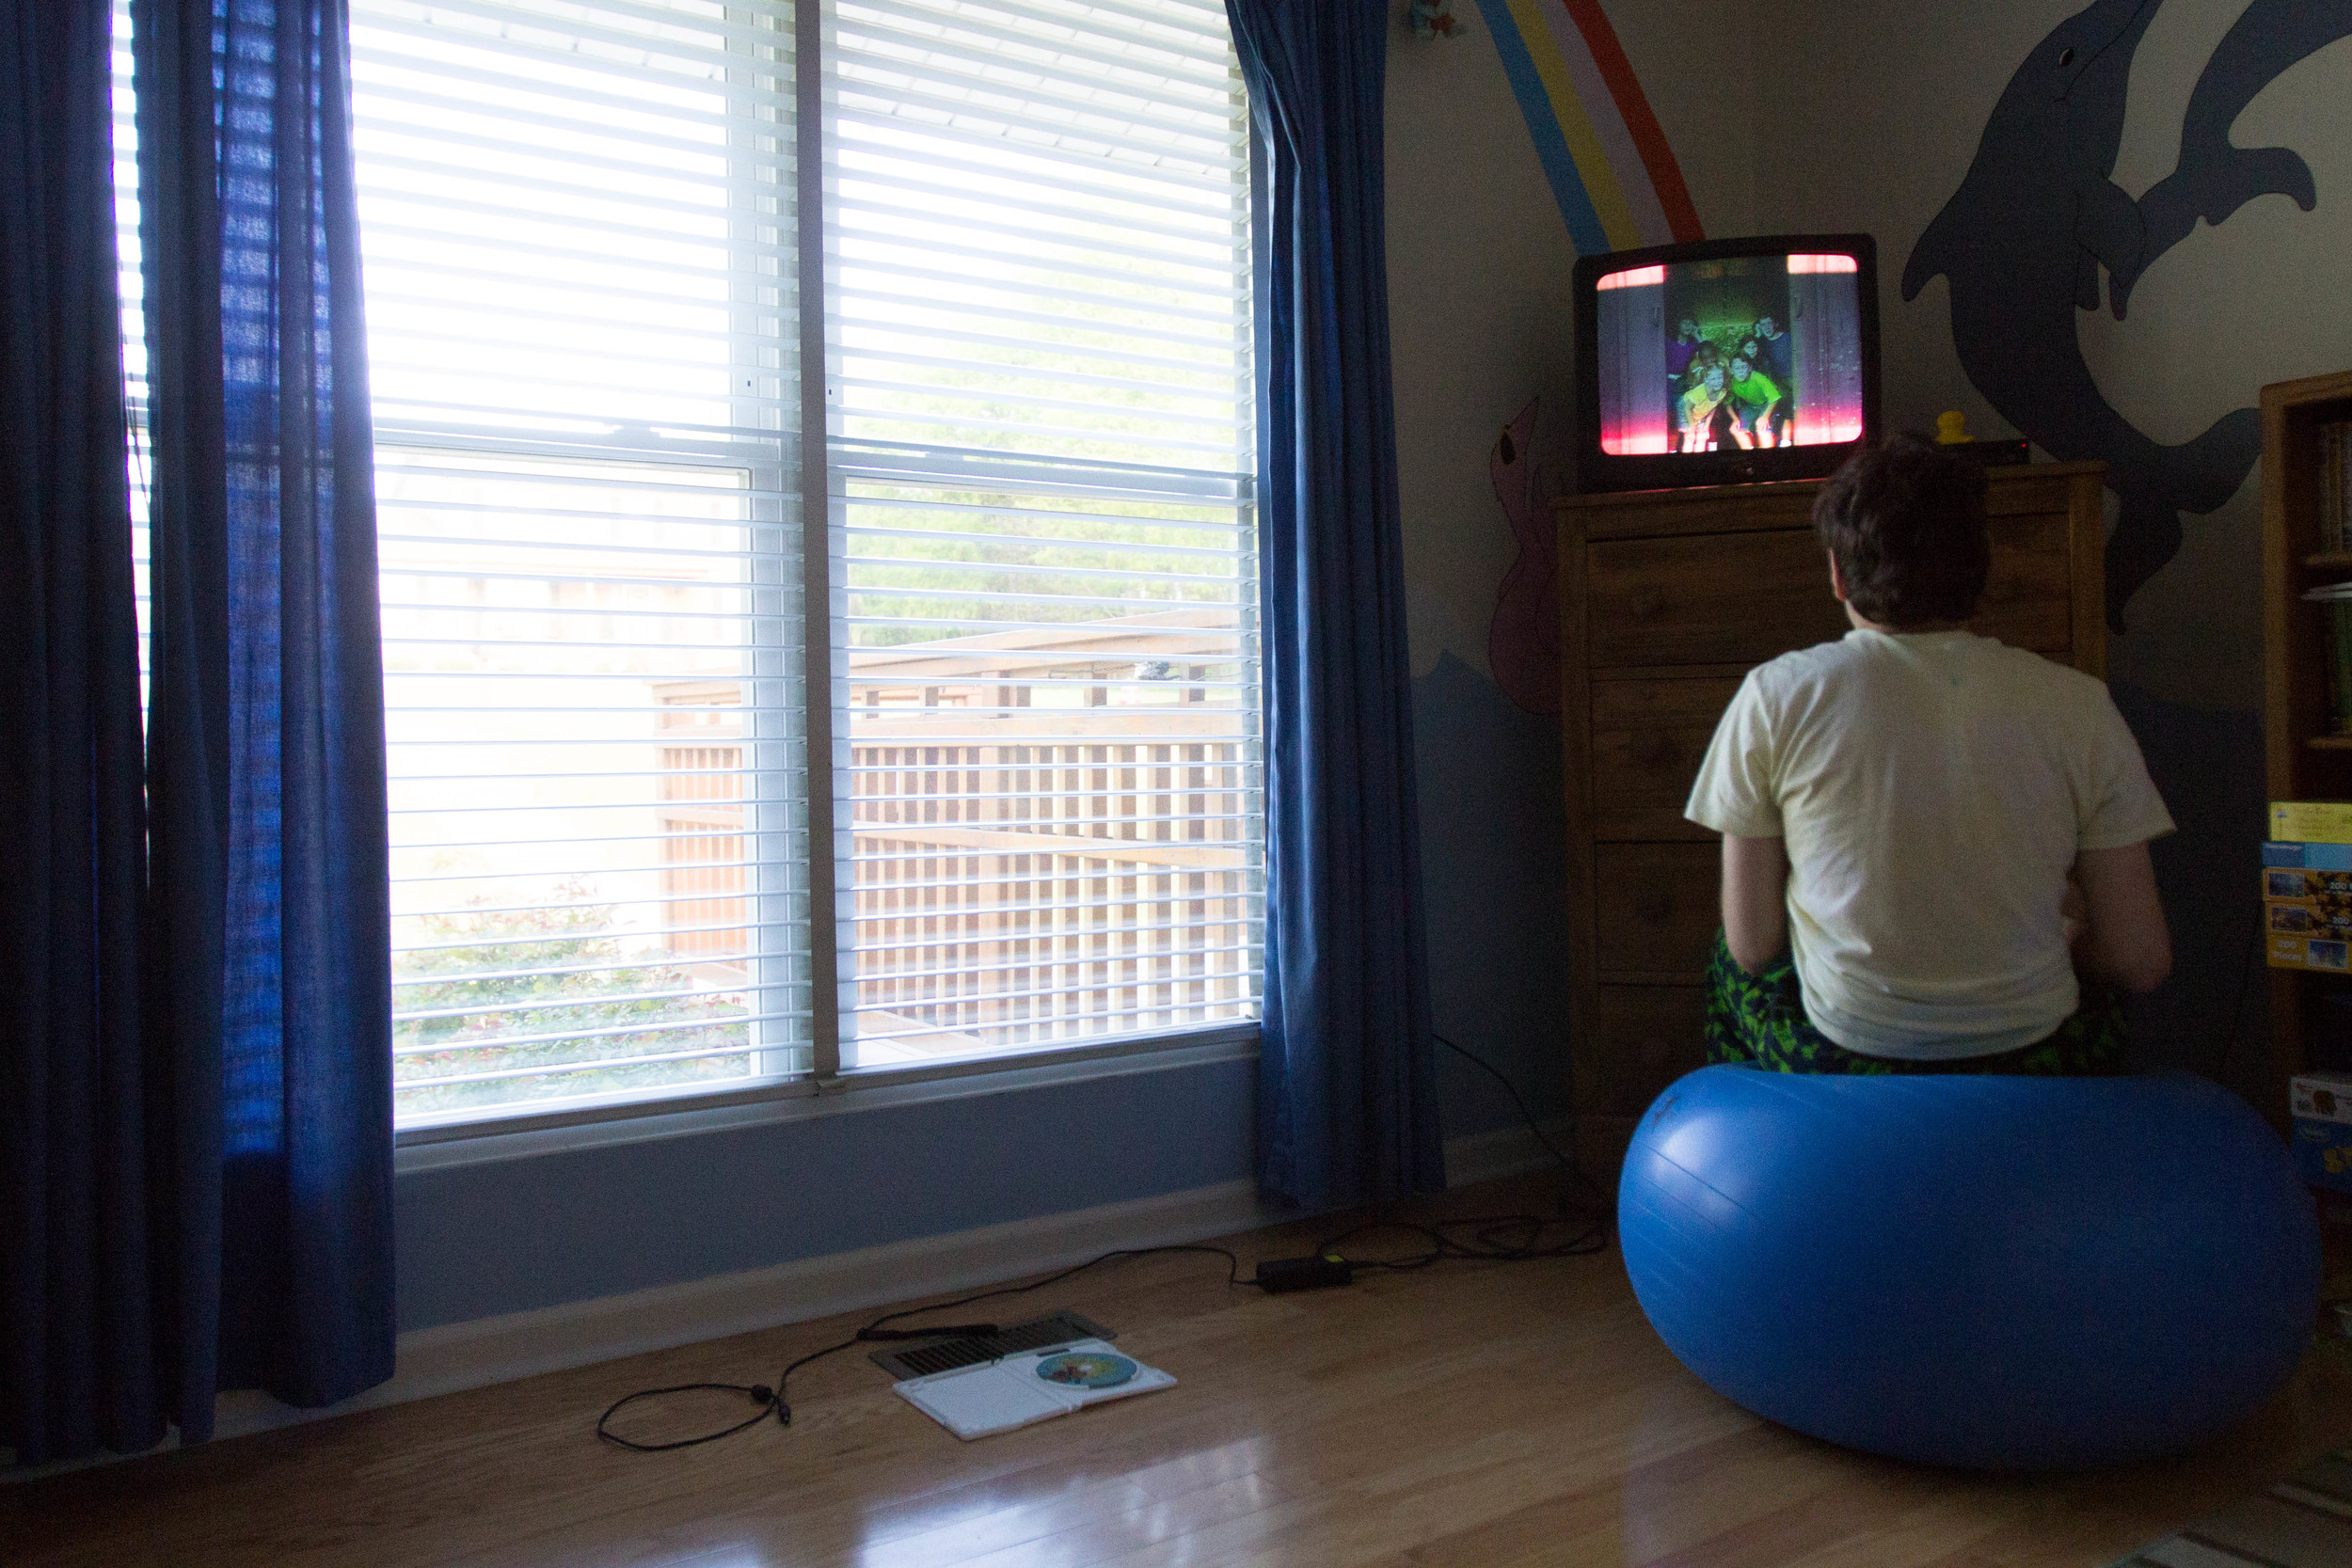 """""""Zack is still mentally very young in a lot of ways, like a 2-year-old, even though he is physically 16,"""" said Vicki.  Zack loves to watch children's shows and movies, replaying certain parts. He sits on a bouncing ball in his room, rewinding the movie so that he can watch the same five seconds over and over again."""